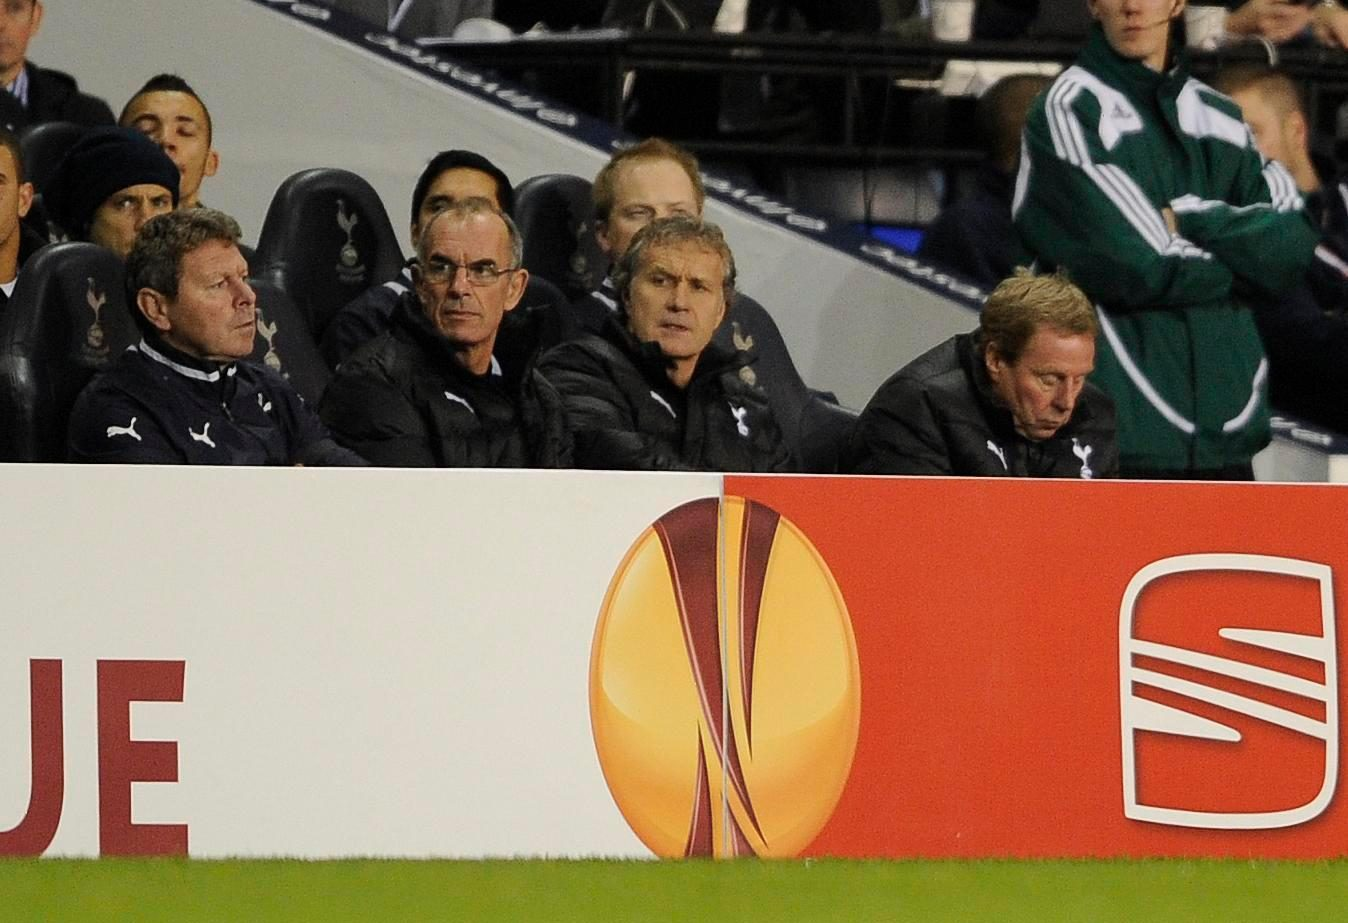 Redknapp's face says it all